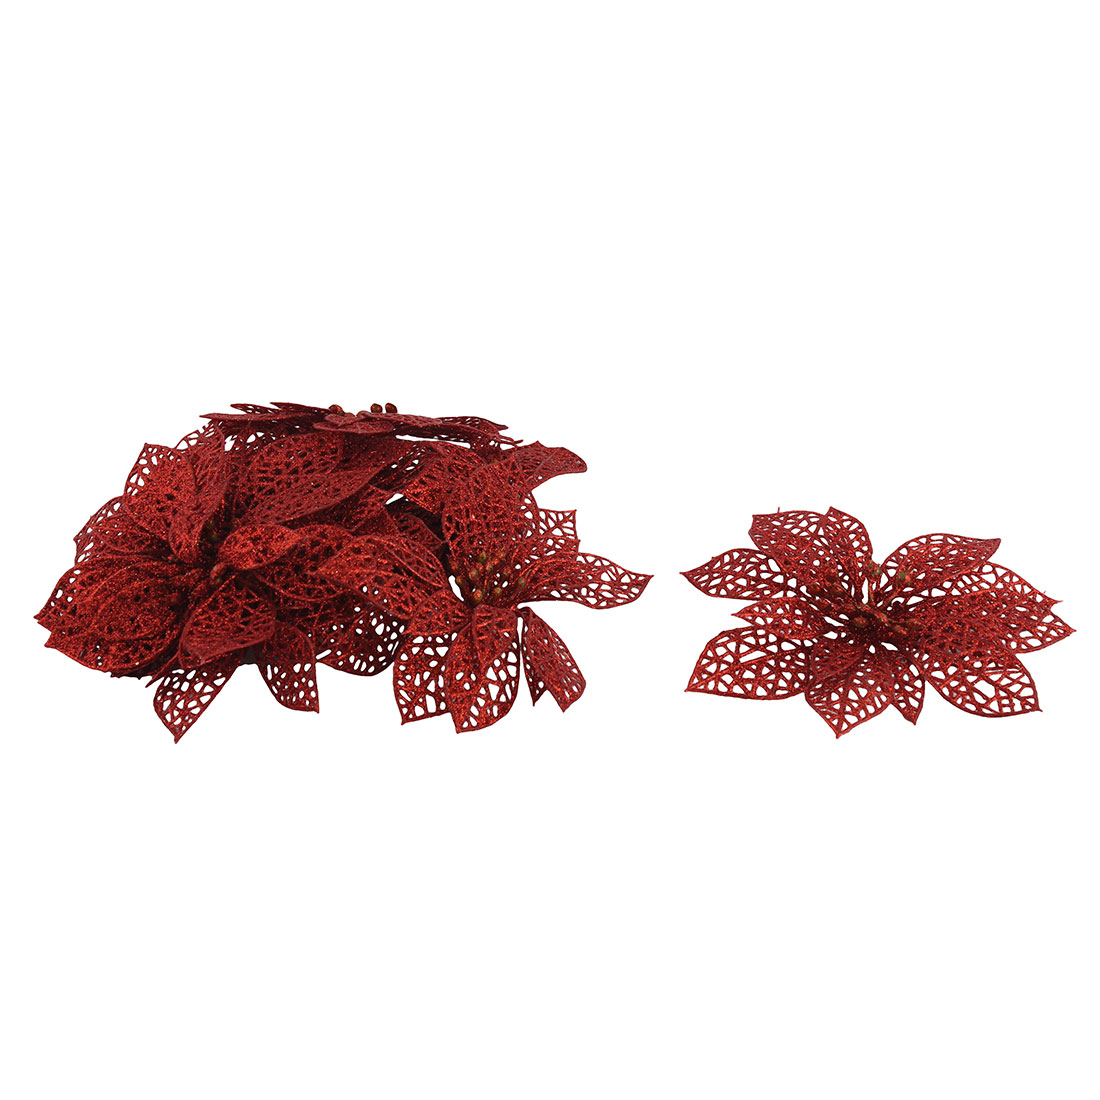 Festival Christmas Tree Artificial Glitter Hanging Wreaths Flower Red 10 PCS